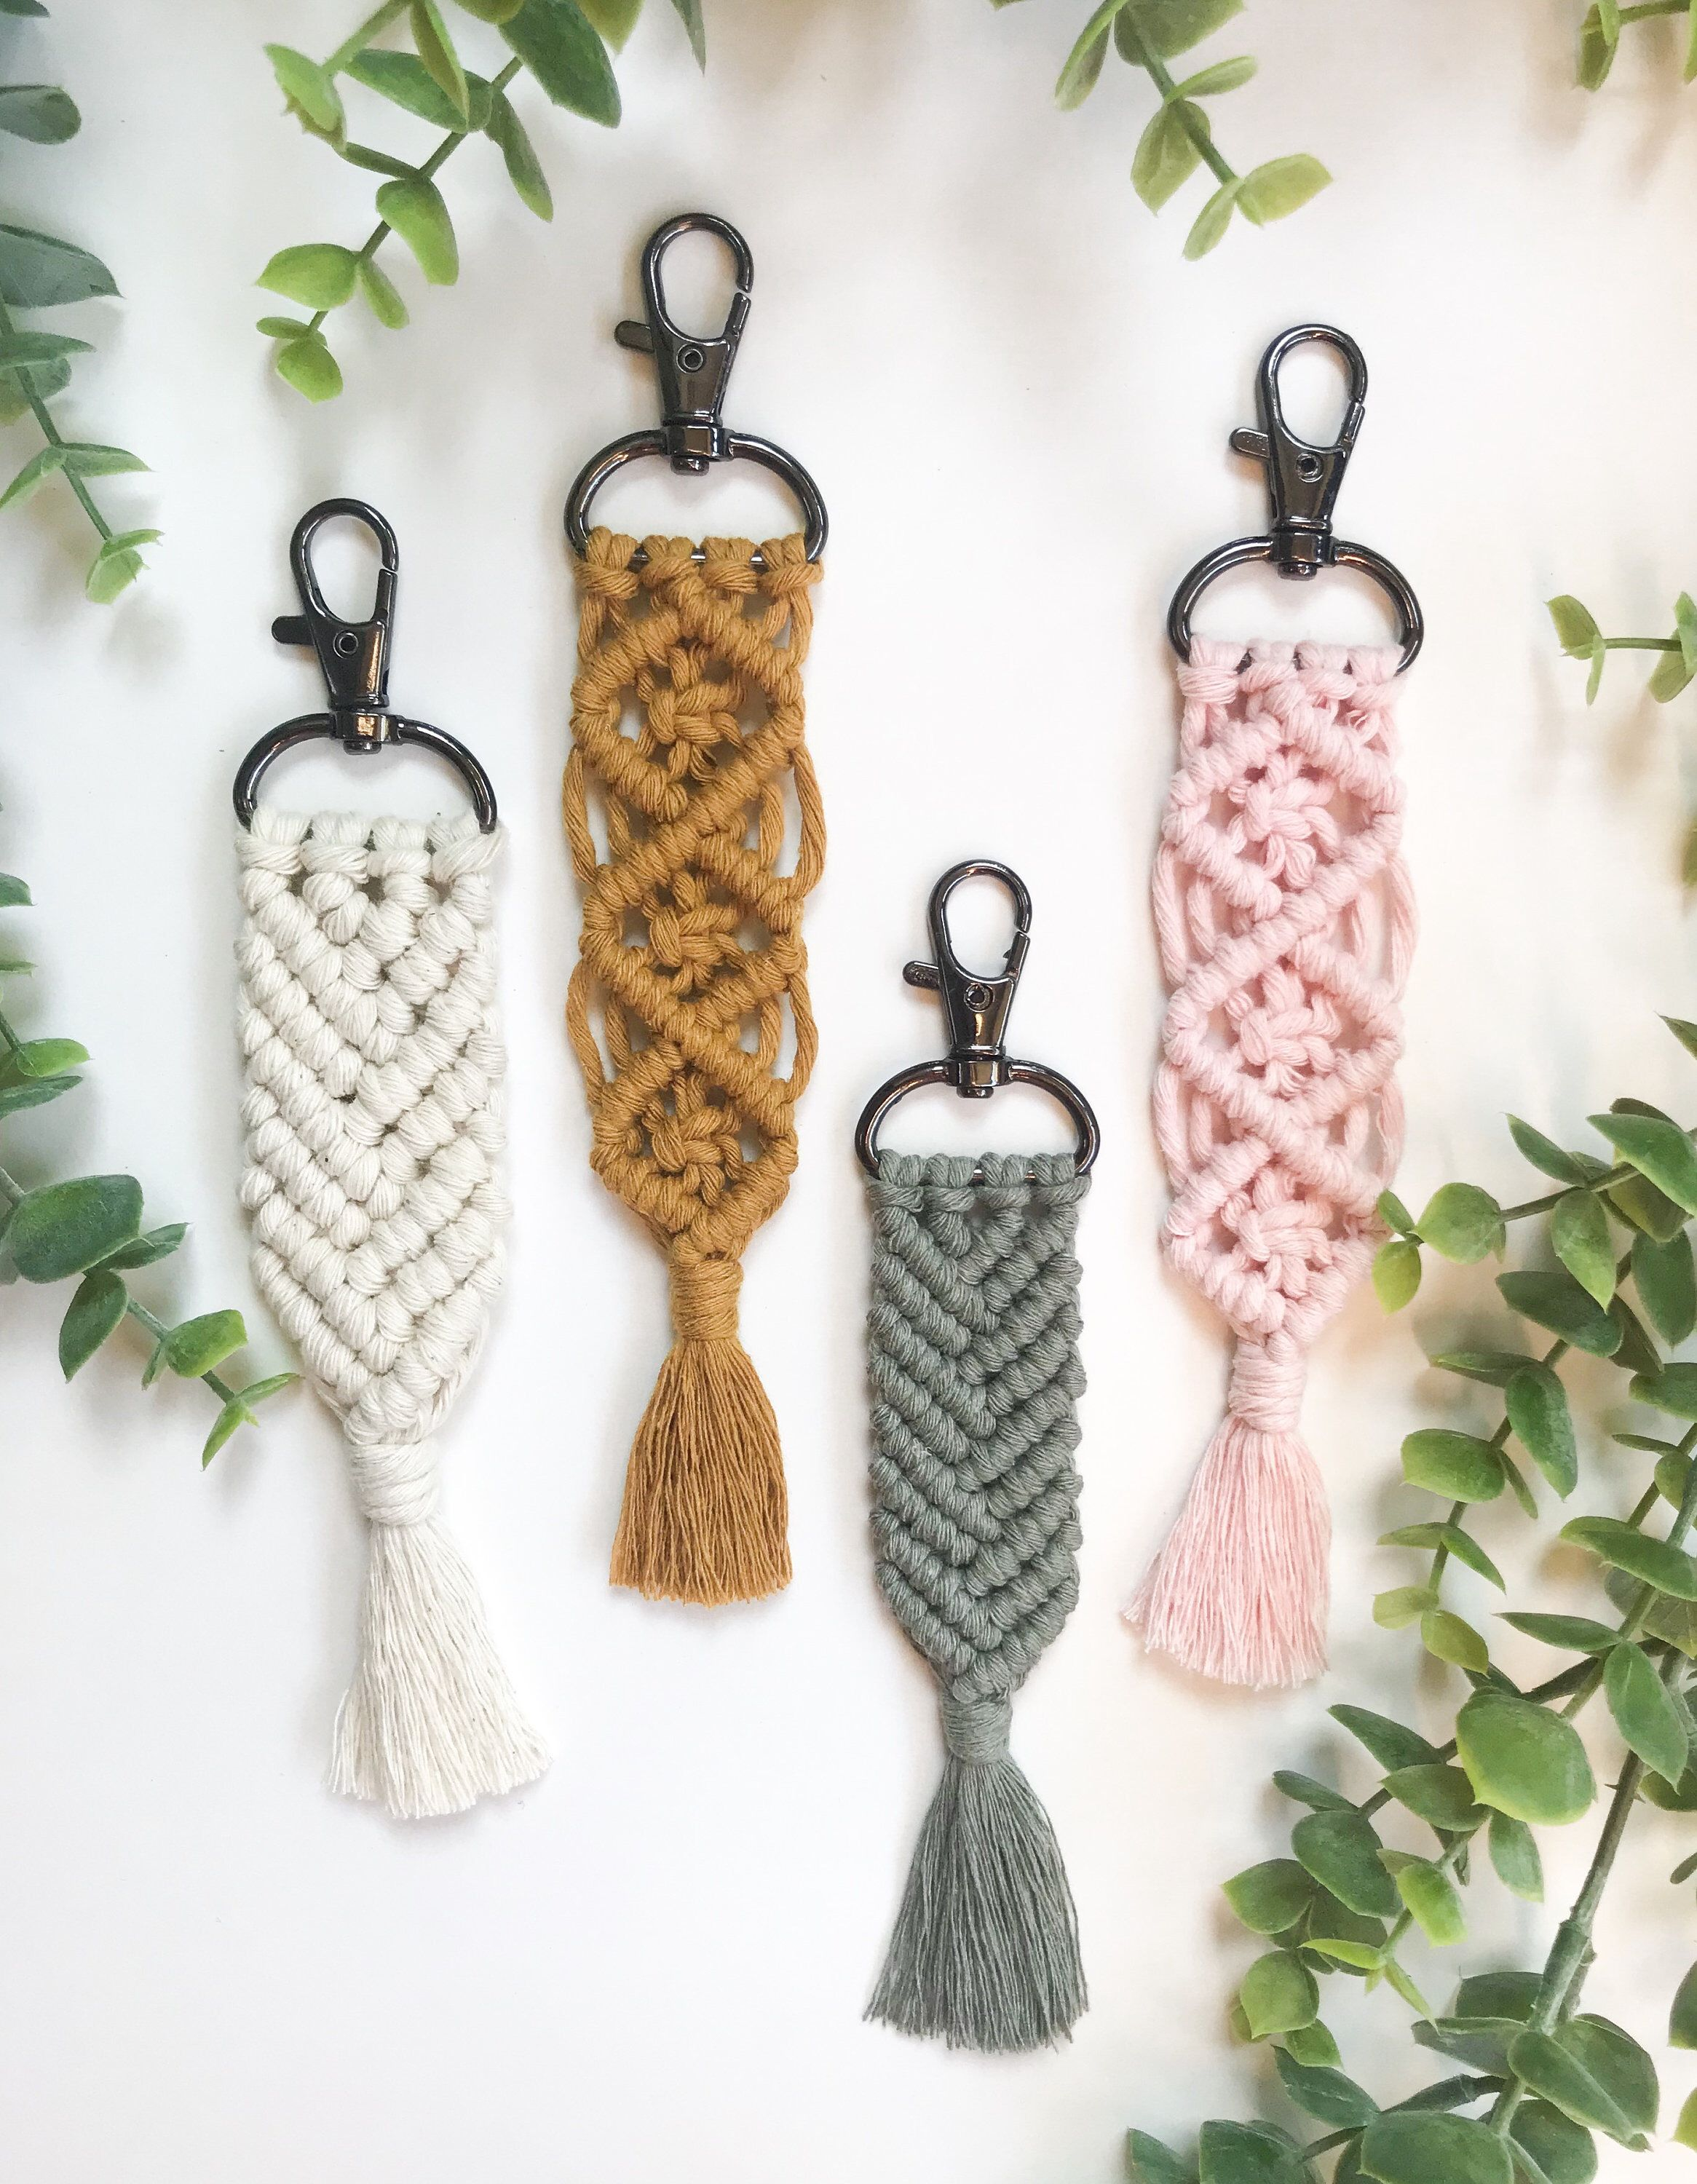 Excited to share this item from my #etsy shop: Macrame Keychains